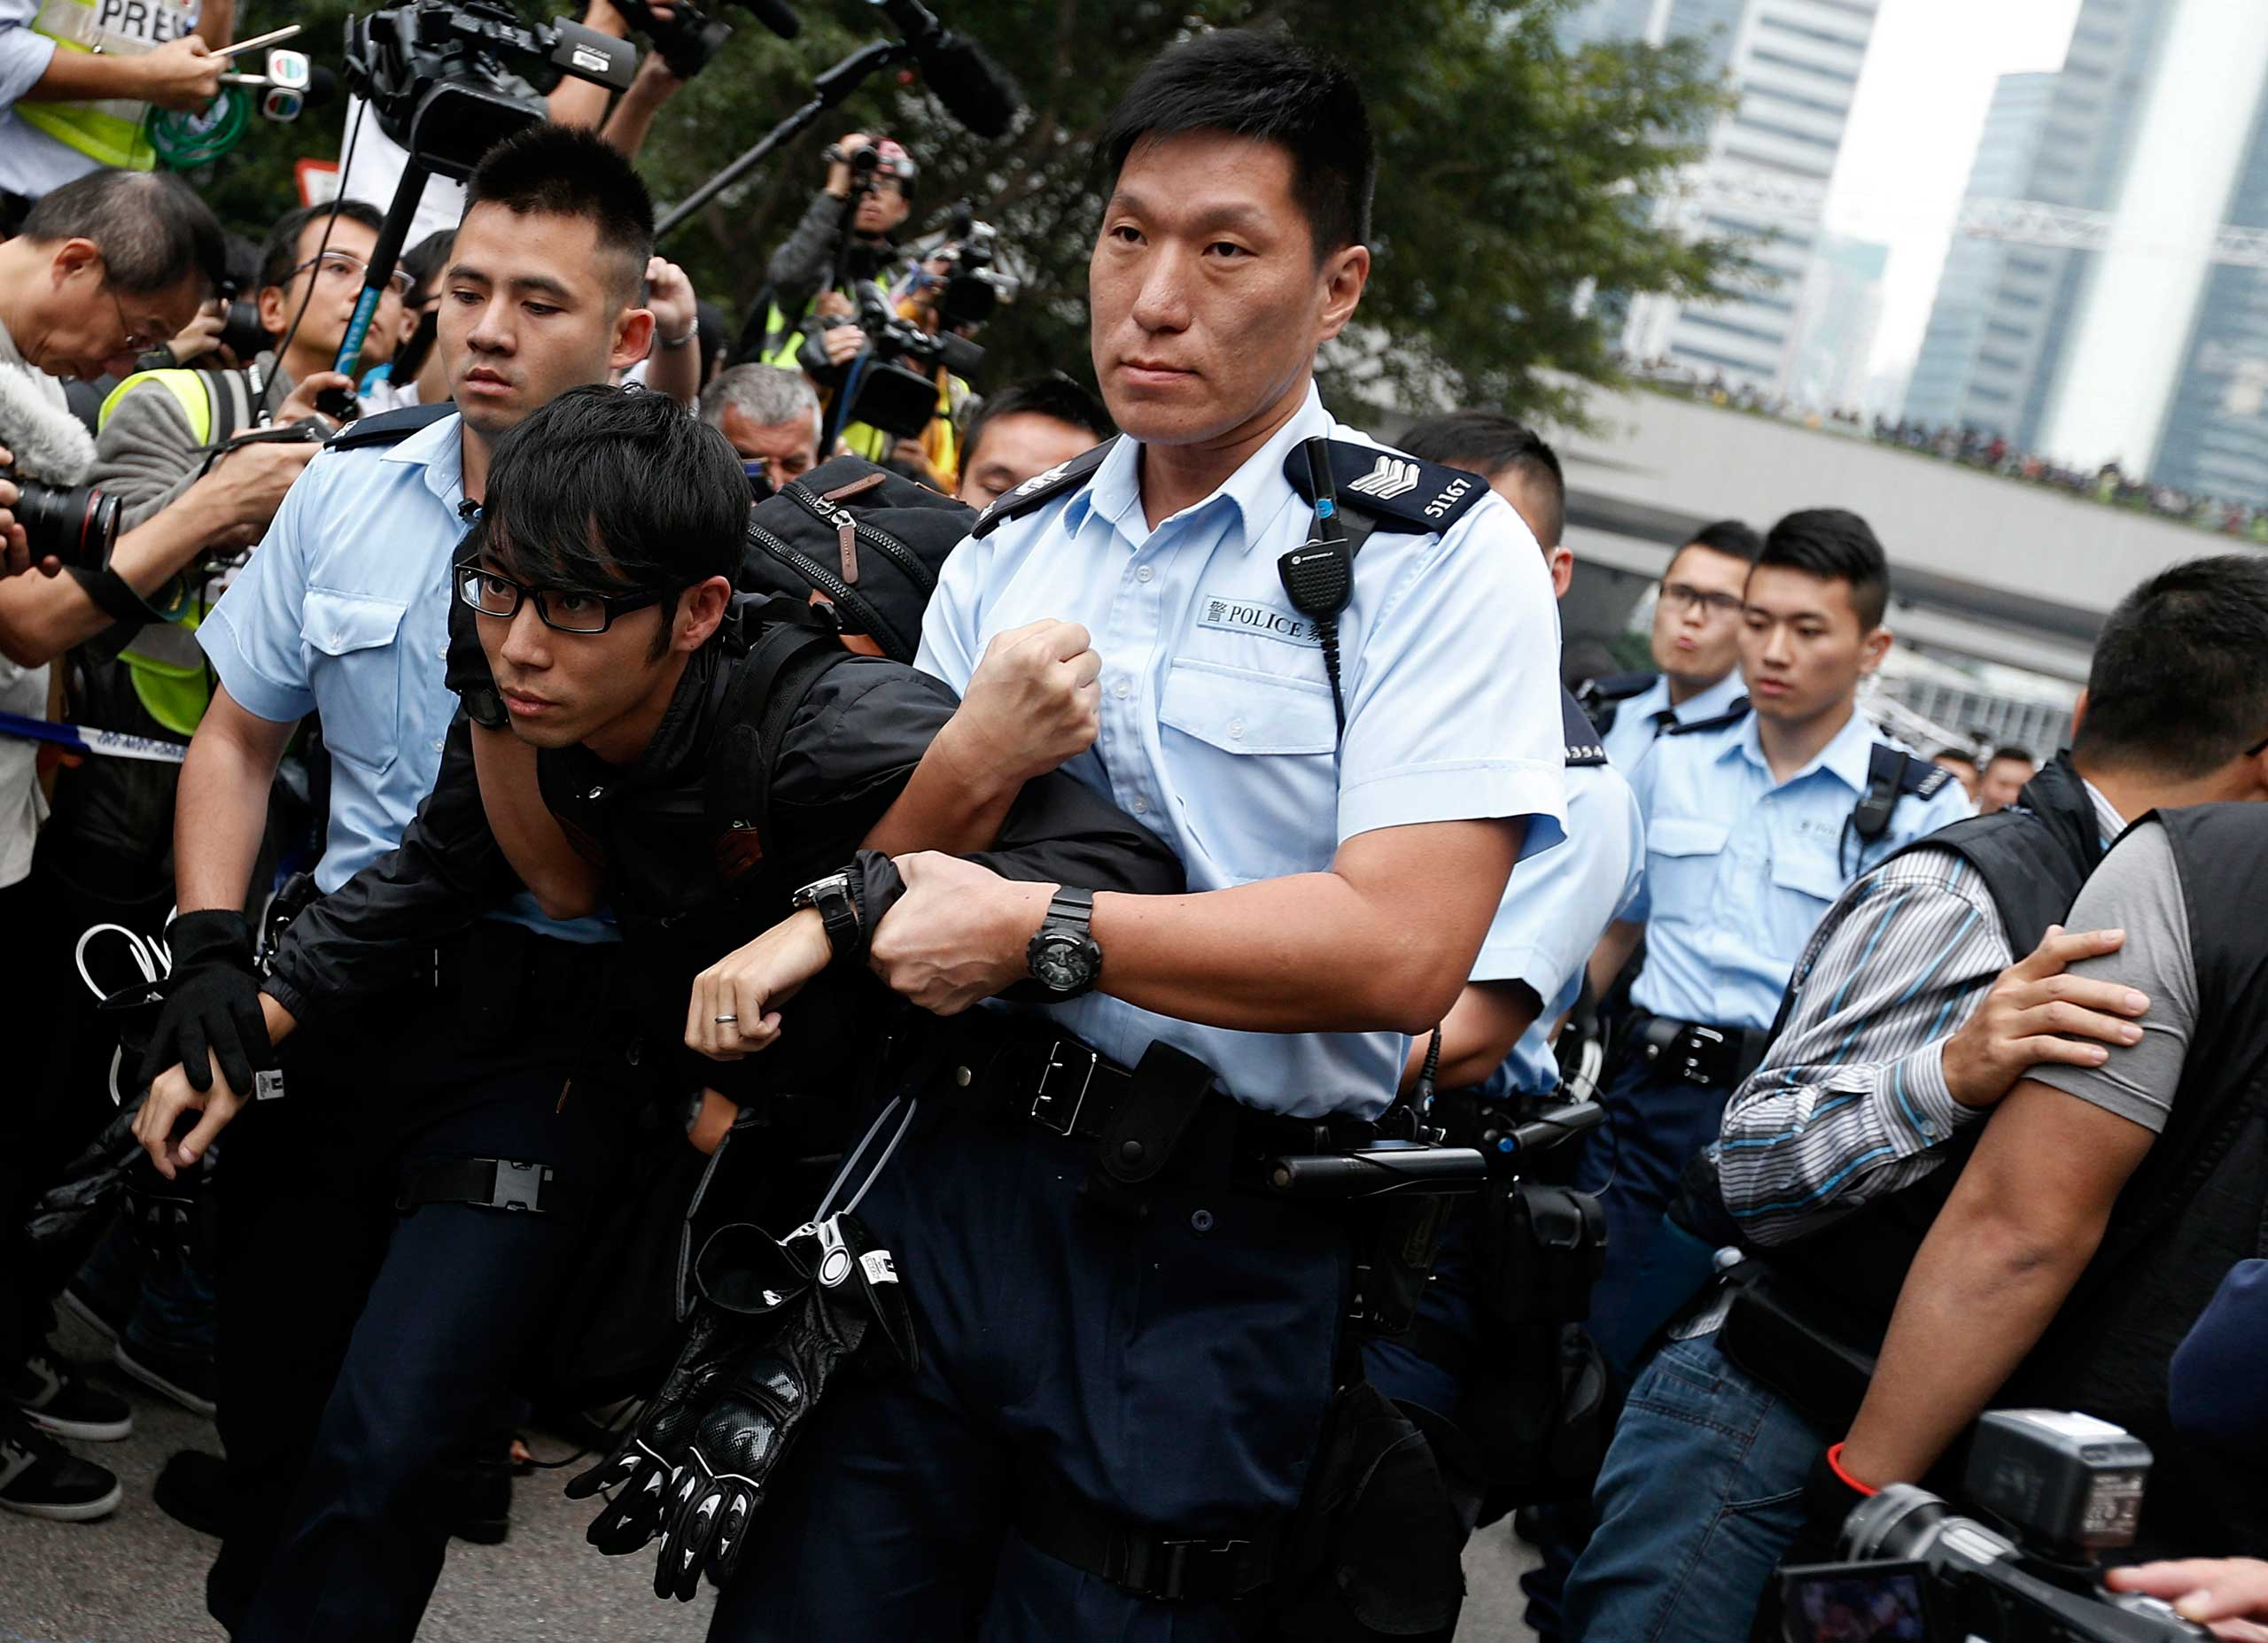 A demonstrator is taken away by policemen, at an area previously blocked by pro-democracy supporters, outside the government headquarters in Hong Kong, Dec. 11, 2014.